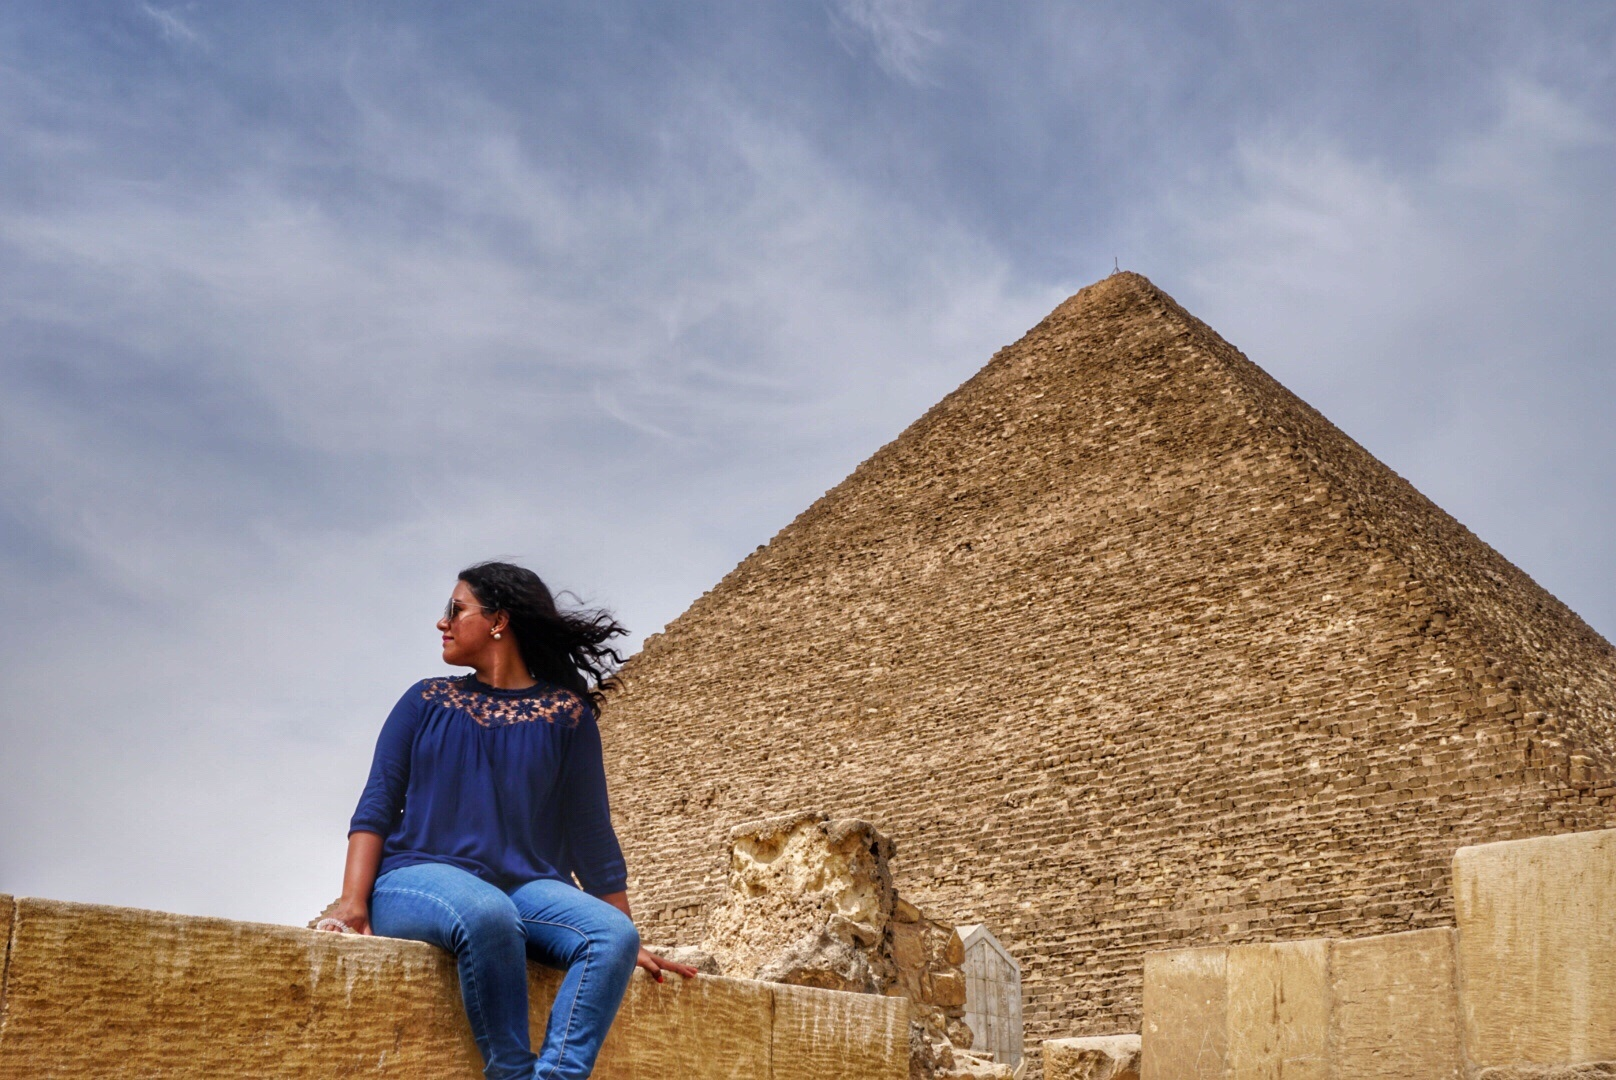 You visited the Great Pyramids of Giza while in transit?!